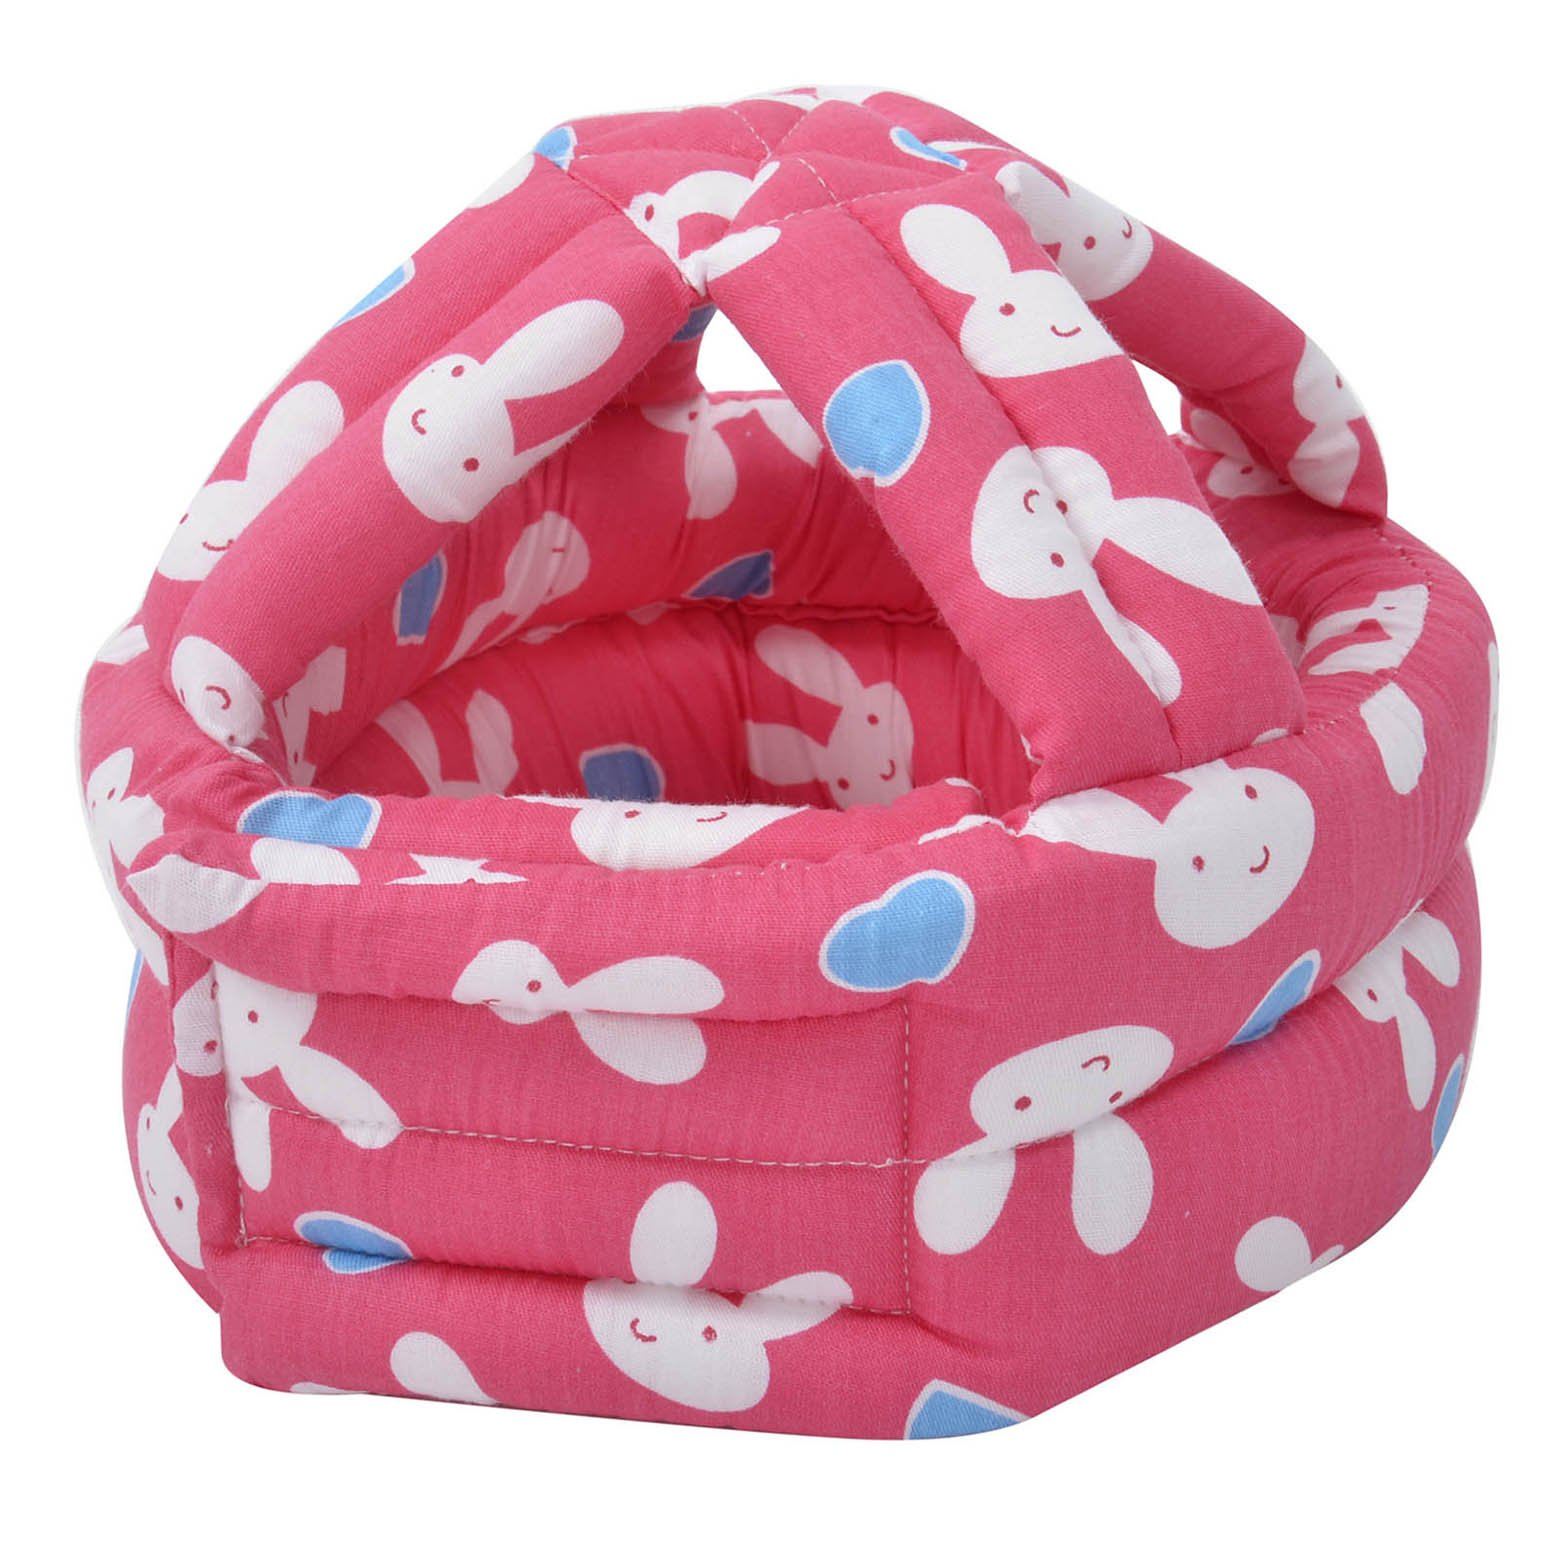 Baby Safety Helmet Adjustable Printed Head Guard Head Protector,Hot Pink Rabbit